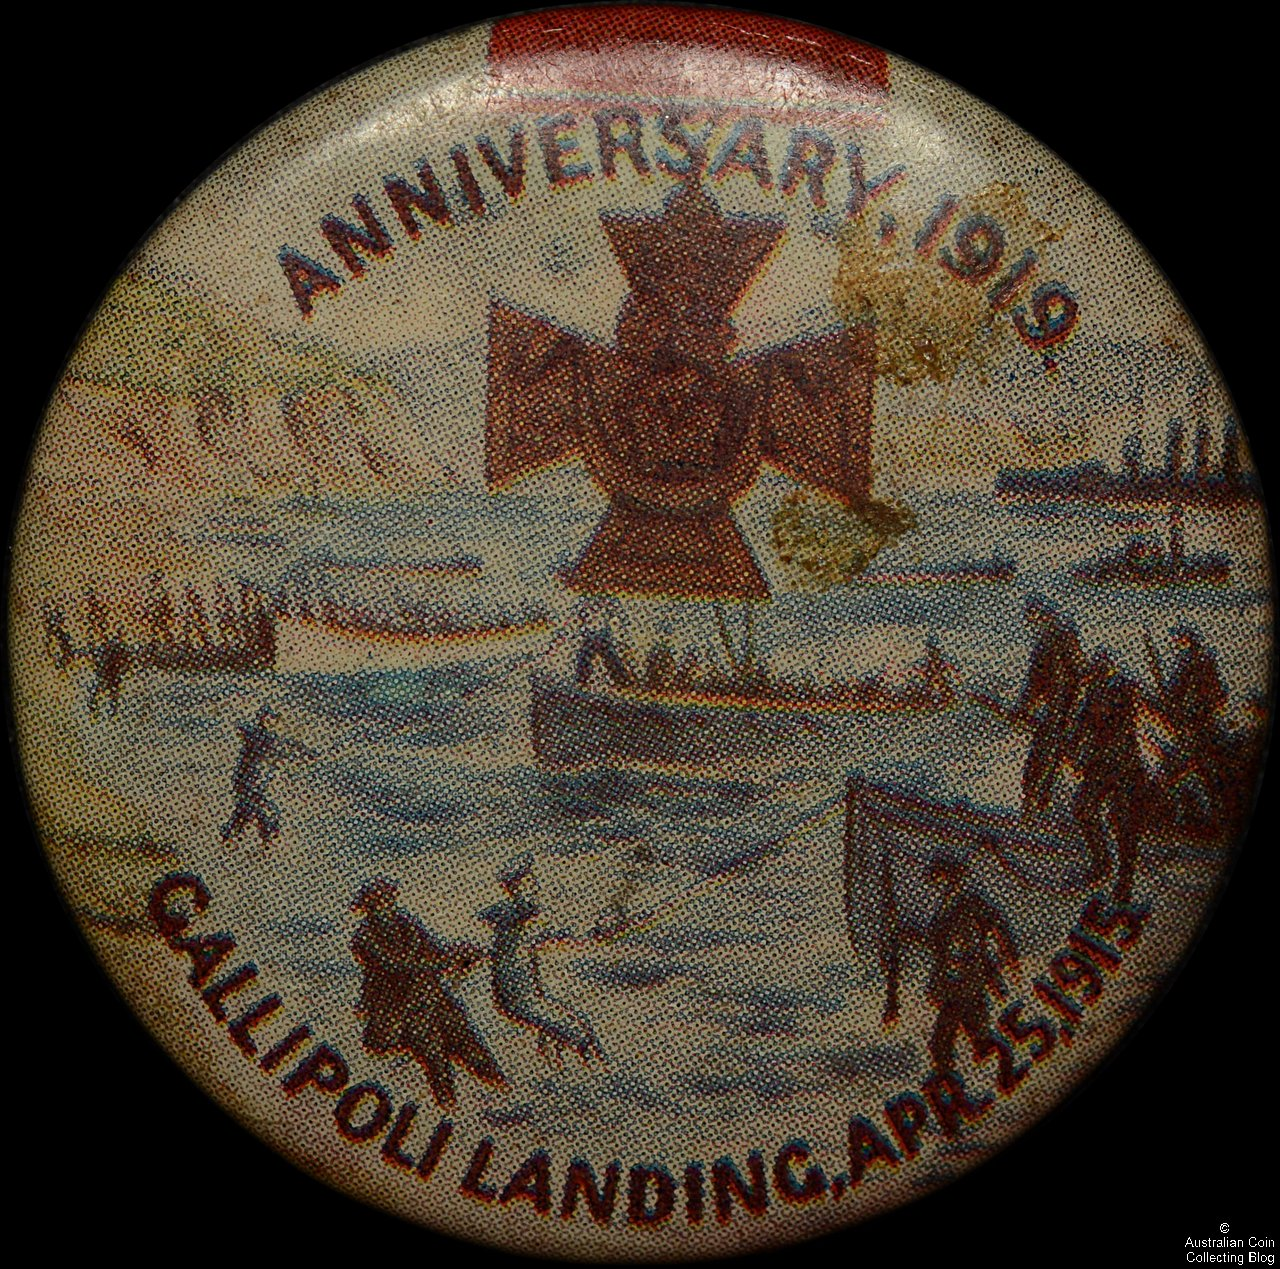 1919 Anniversary of Gallipoli Landings Tin Badge